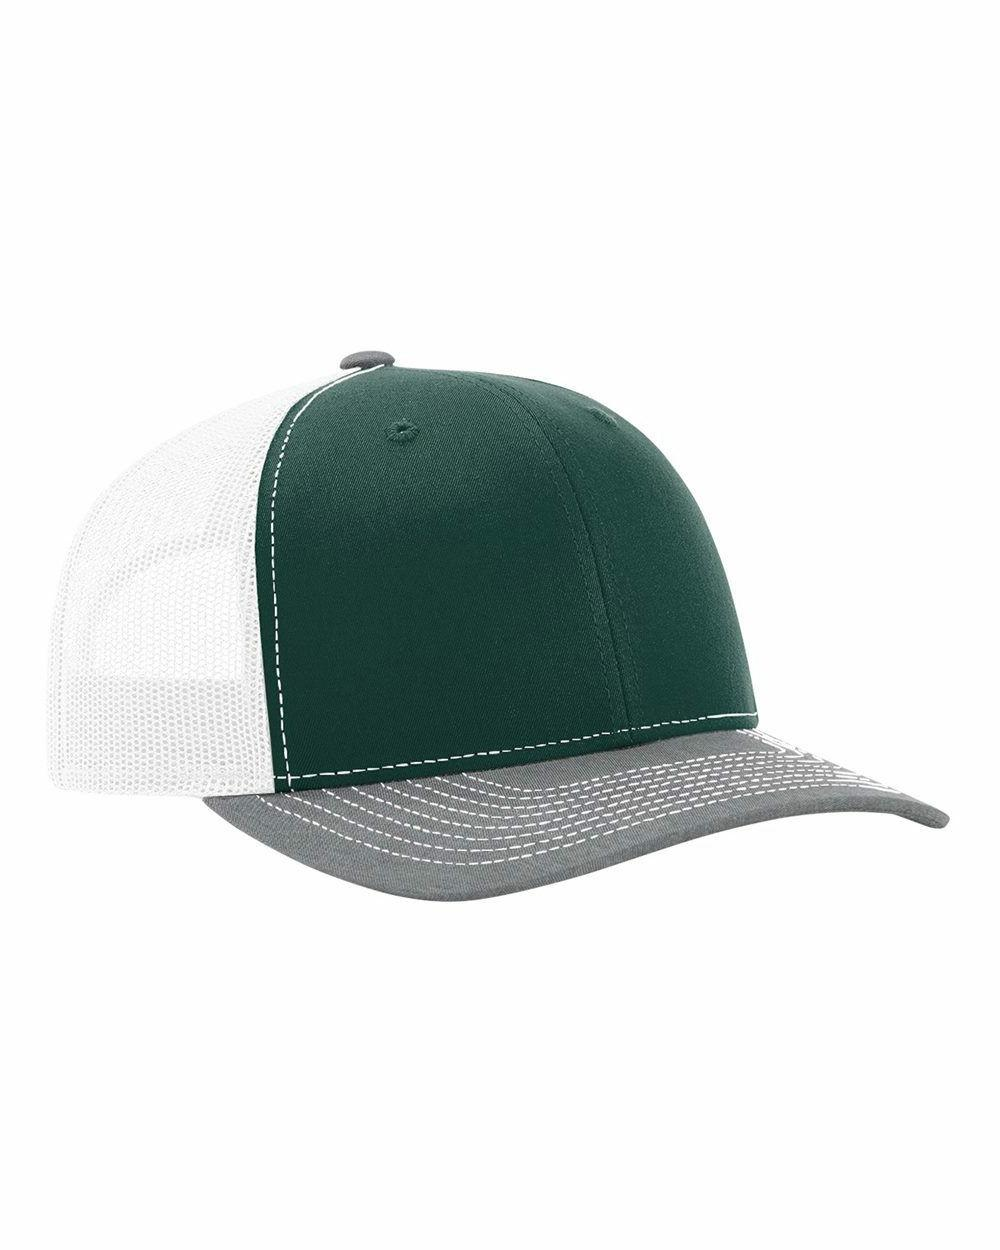 $1.99 Trucker Baseball Cap Hat